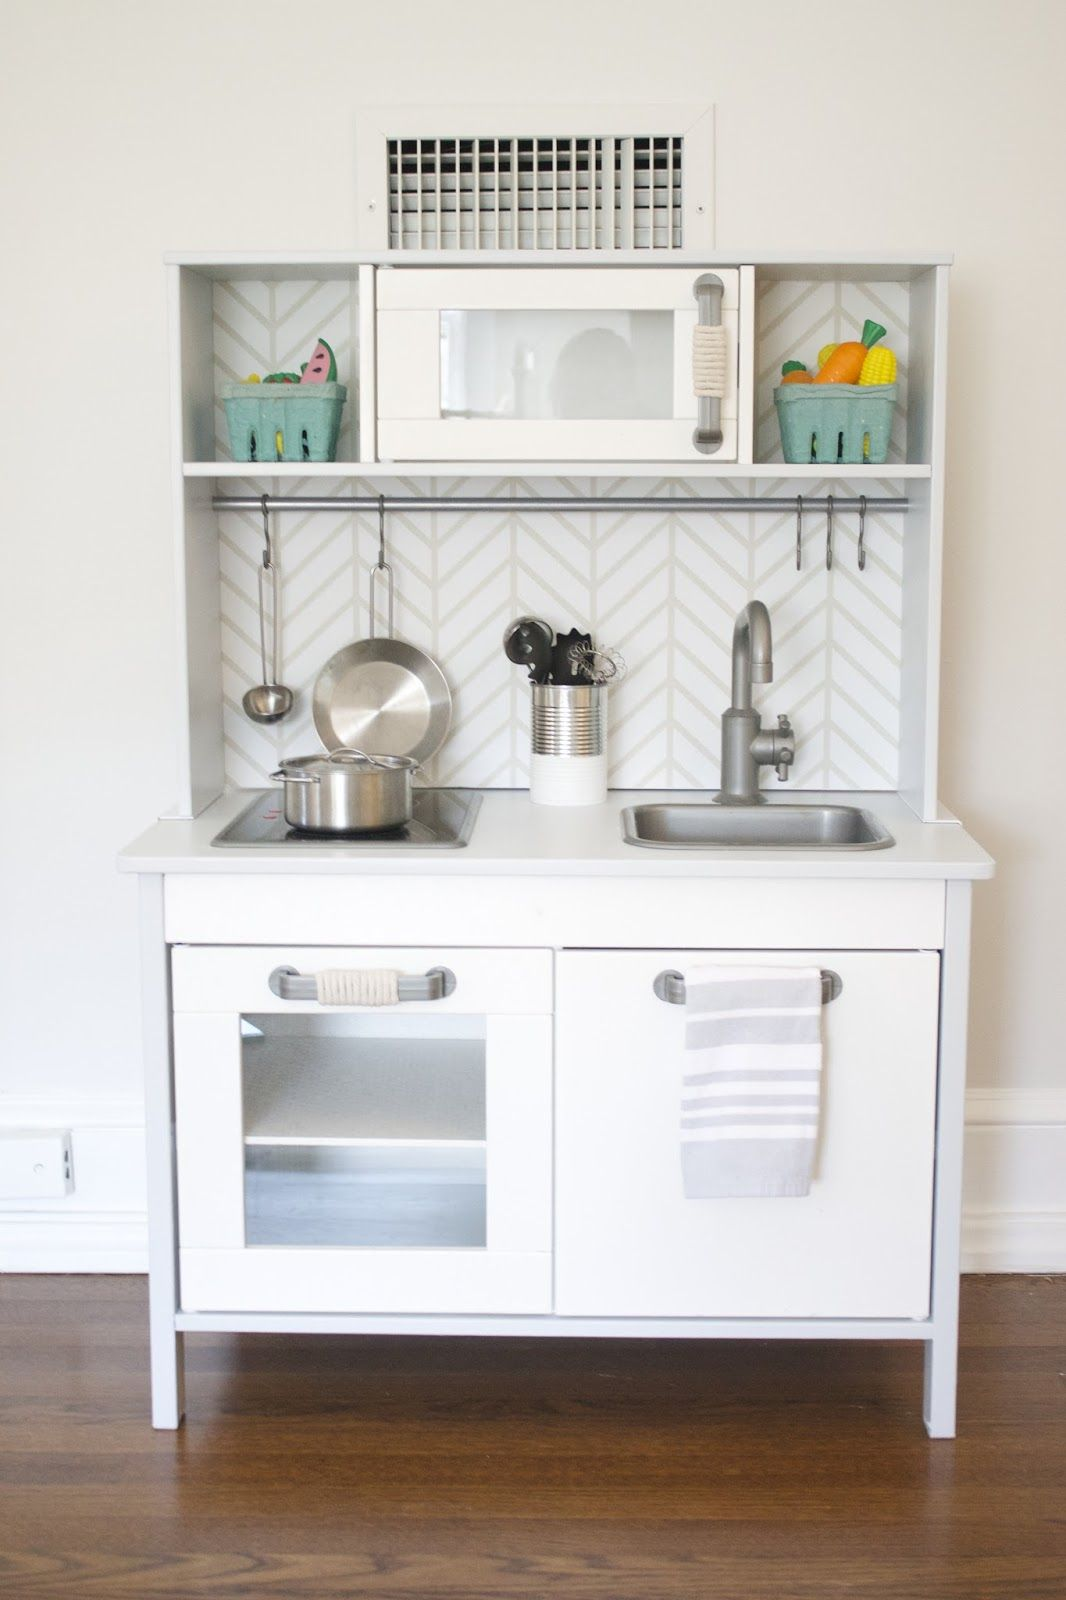 the picket fence projects Kiddie kitchen renovation